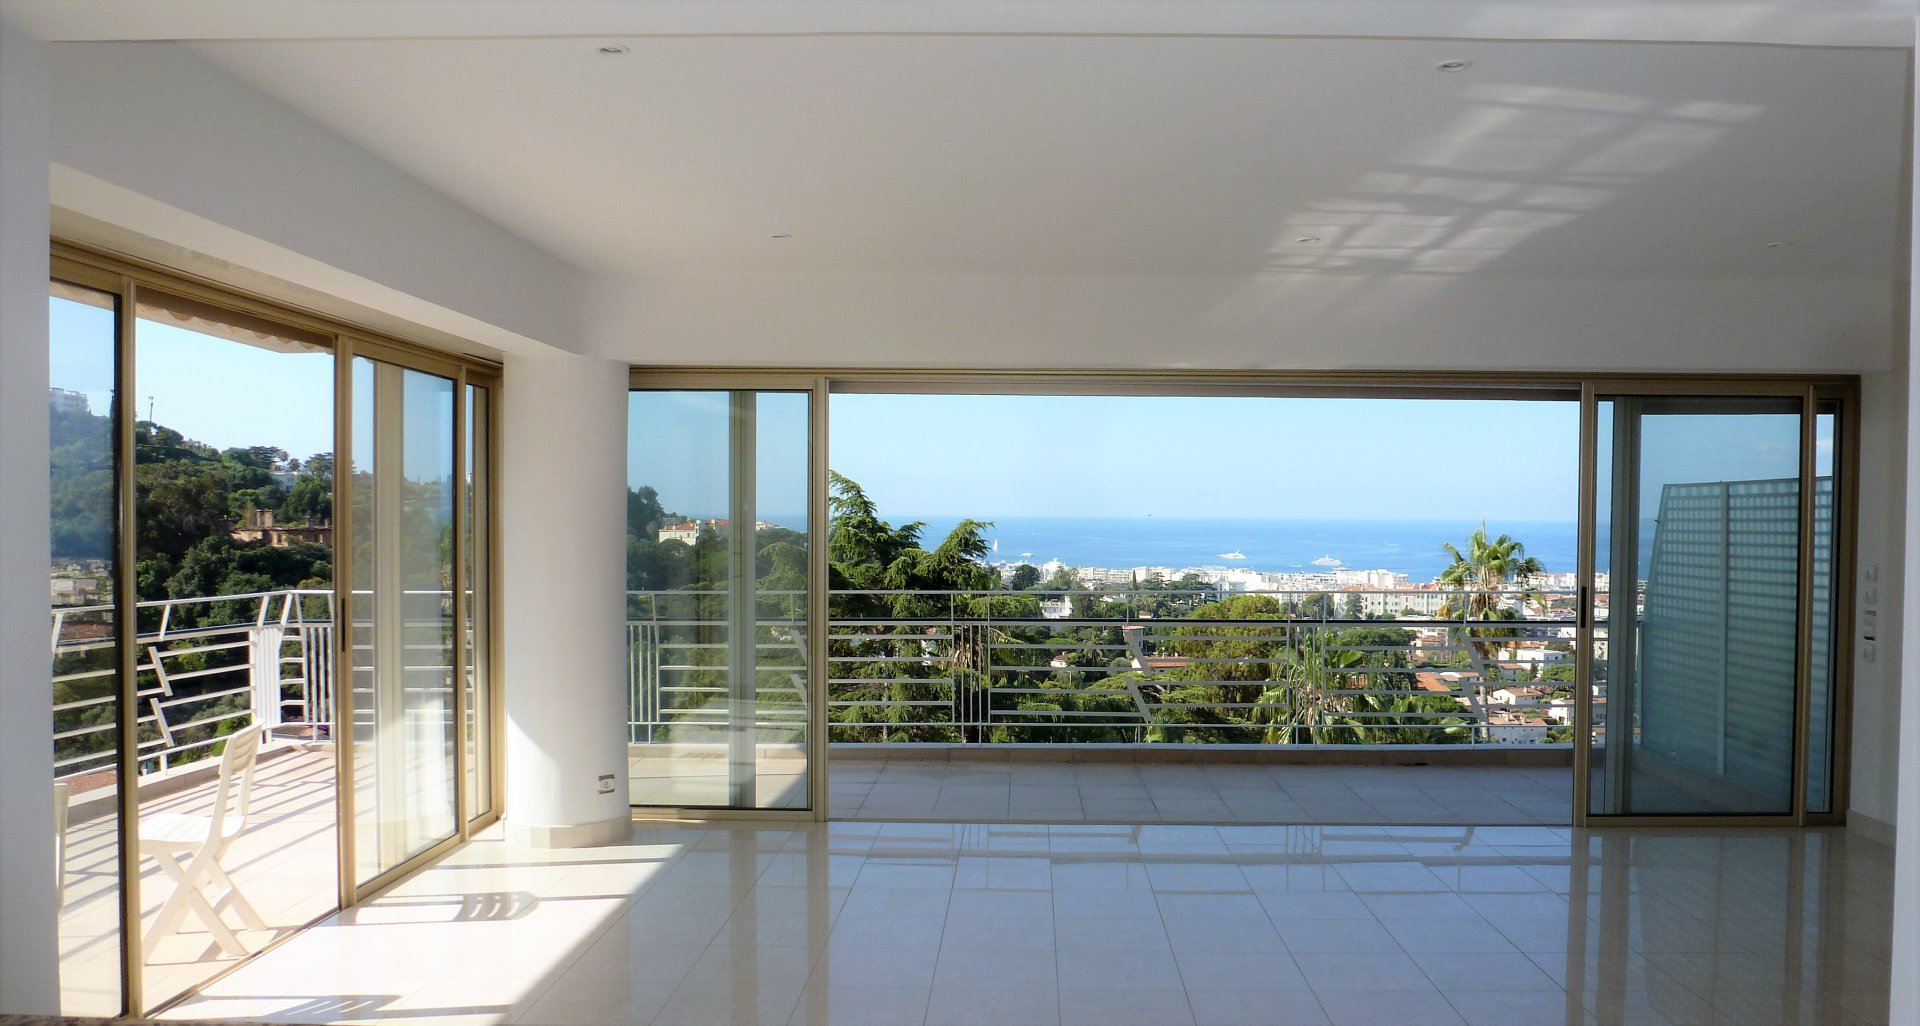 TOP FLOOR 3P 93 M² + 45M² PANORAMIC SEA VIEW